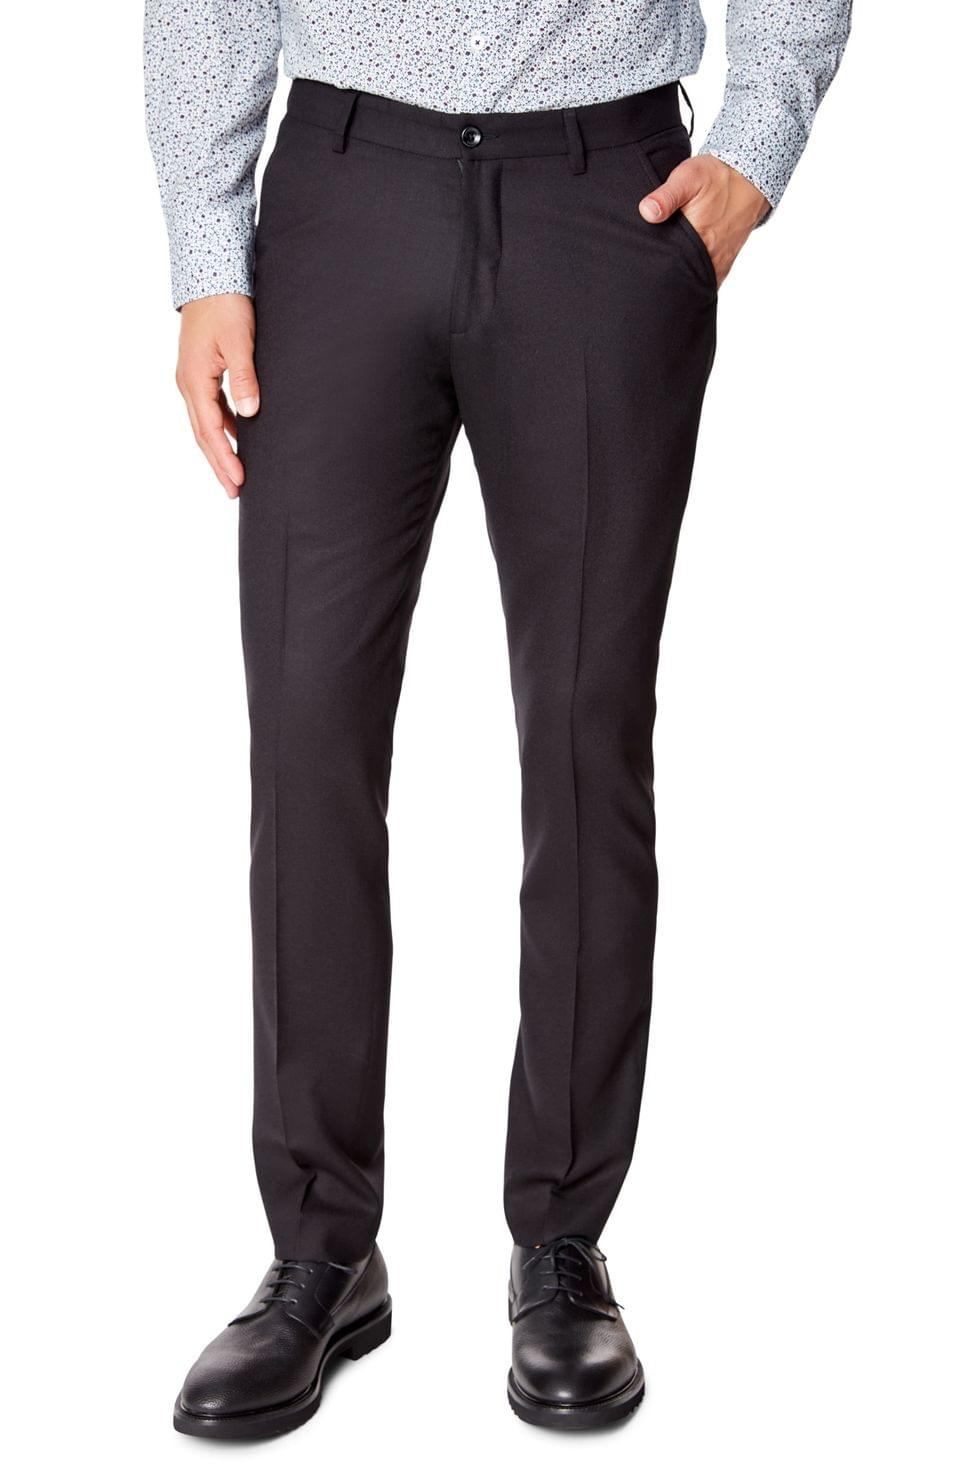 Men's Good Man Brand Flat Front Solid Wool Dress Pants